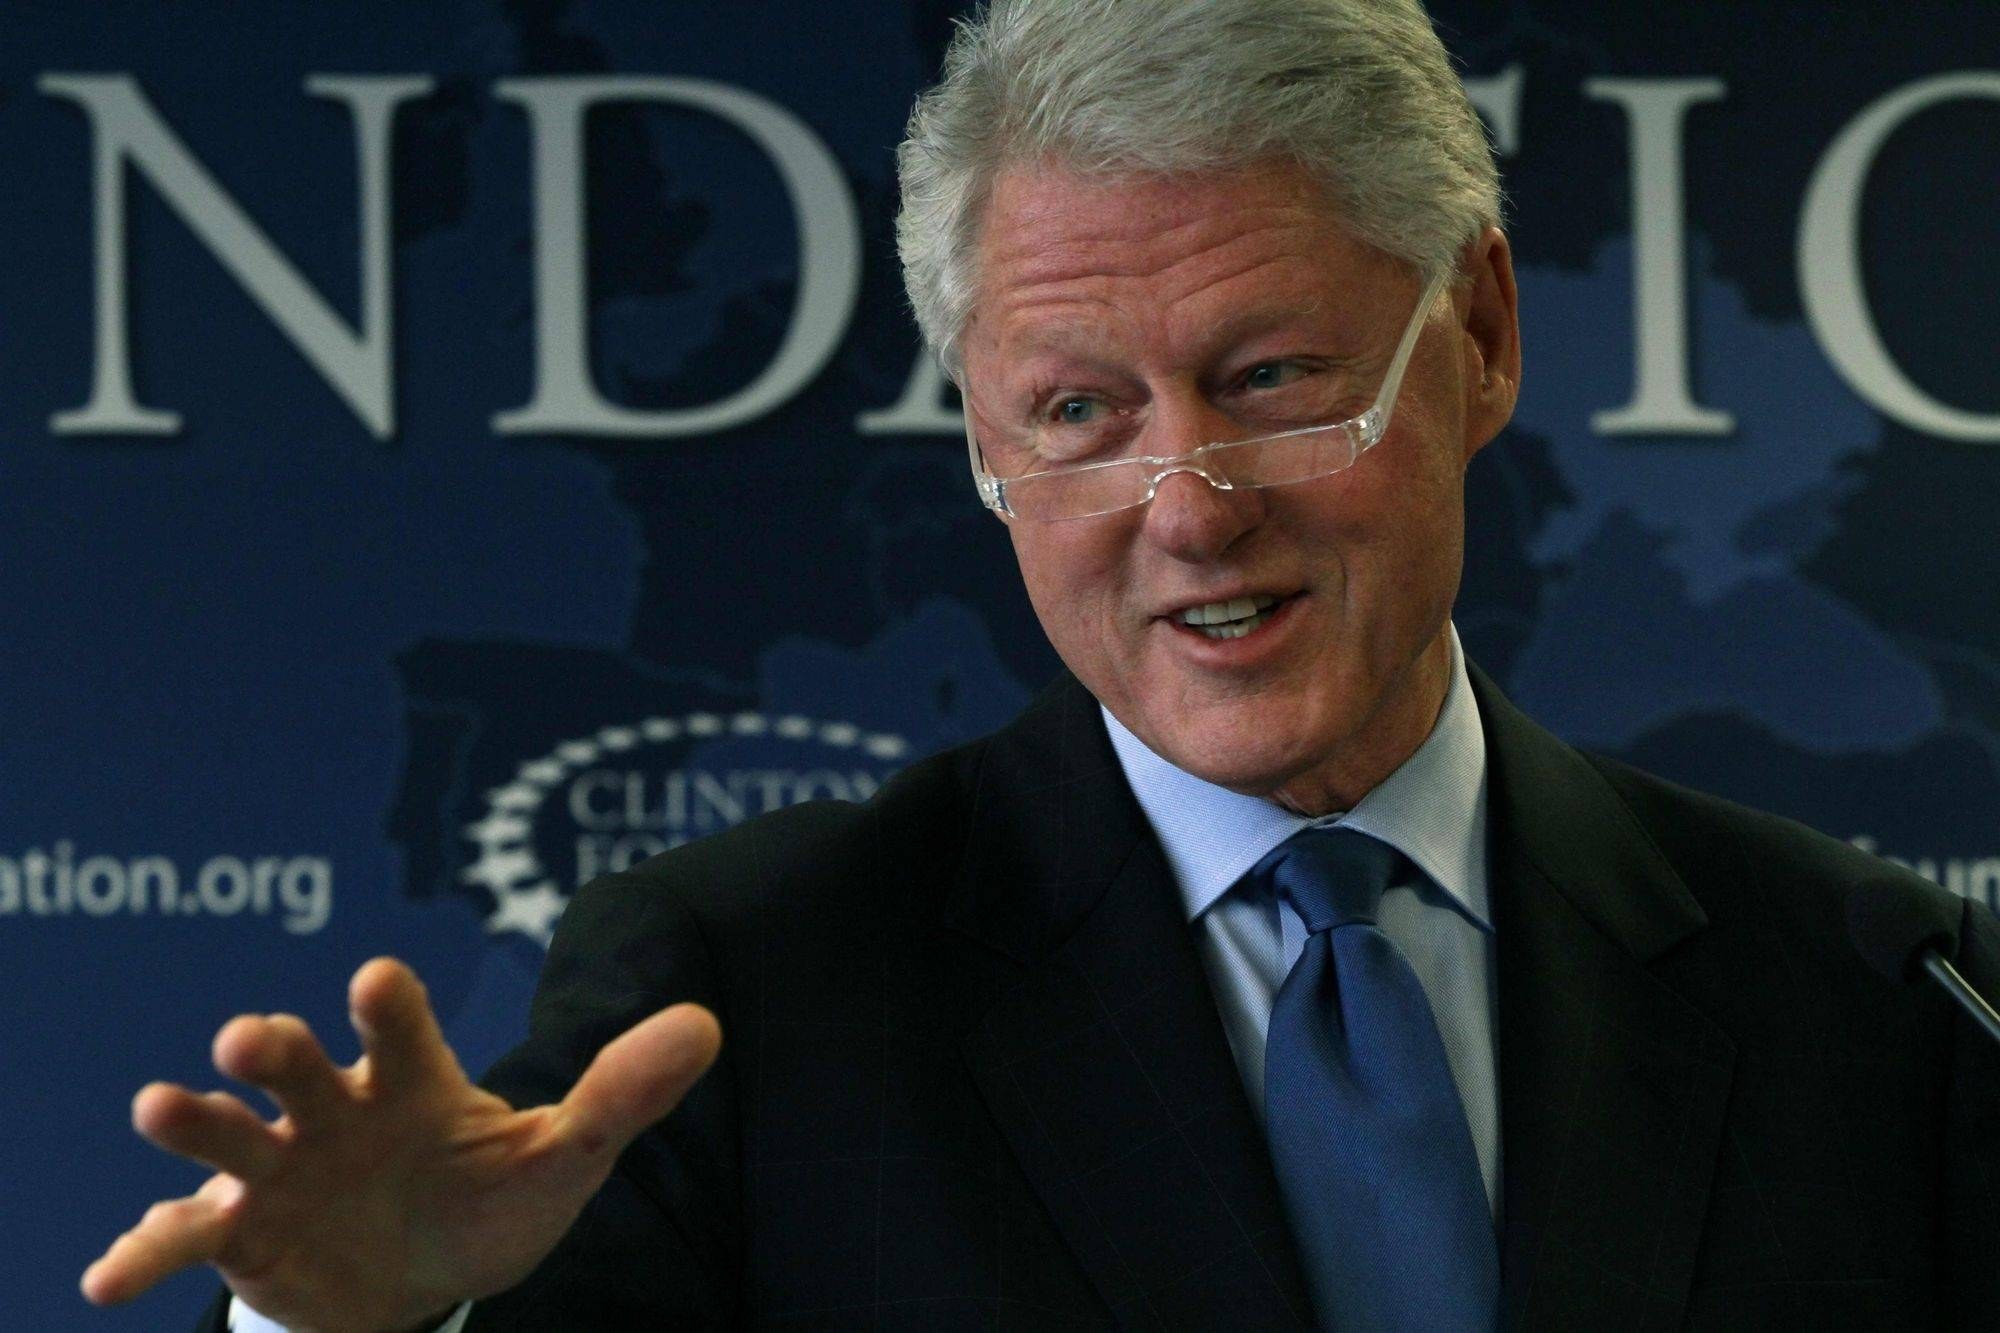 Former President Bill Clinton was back on the job last week, speaking during a news conference at the offices of the Clinton Foundation in New York.